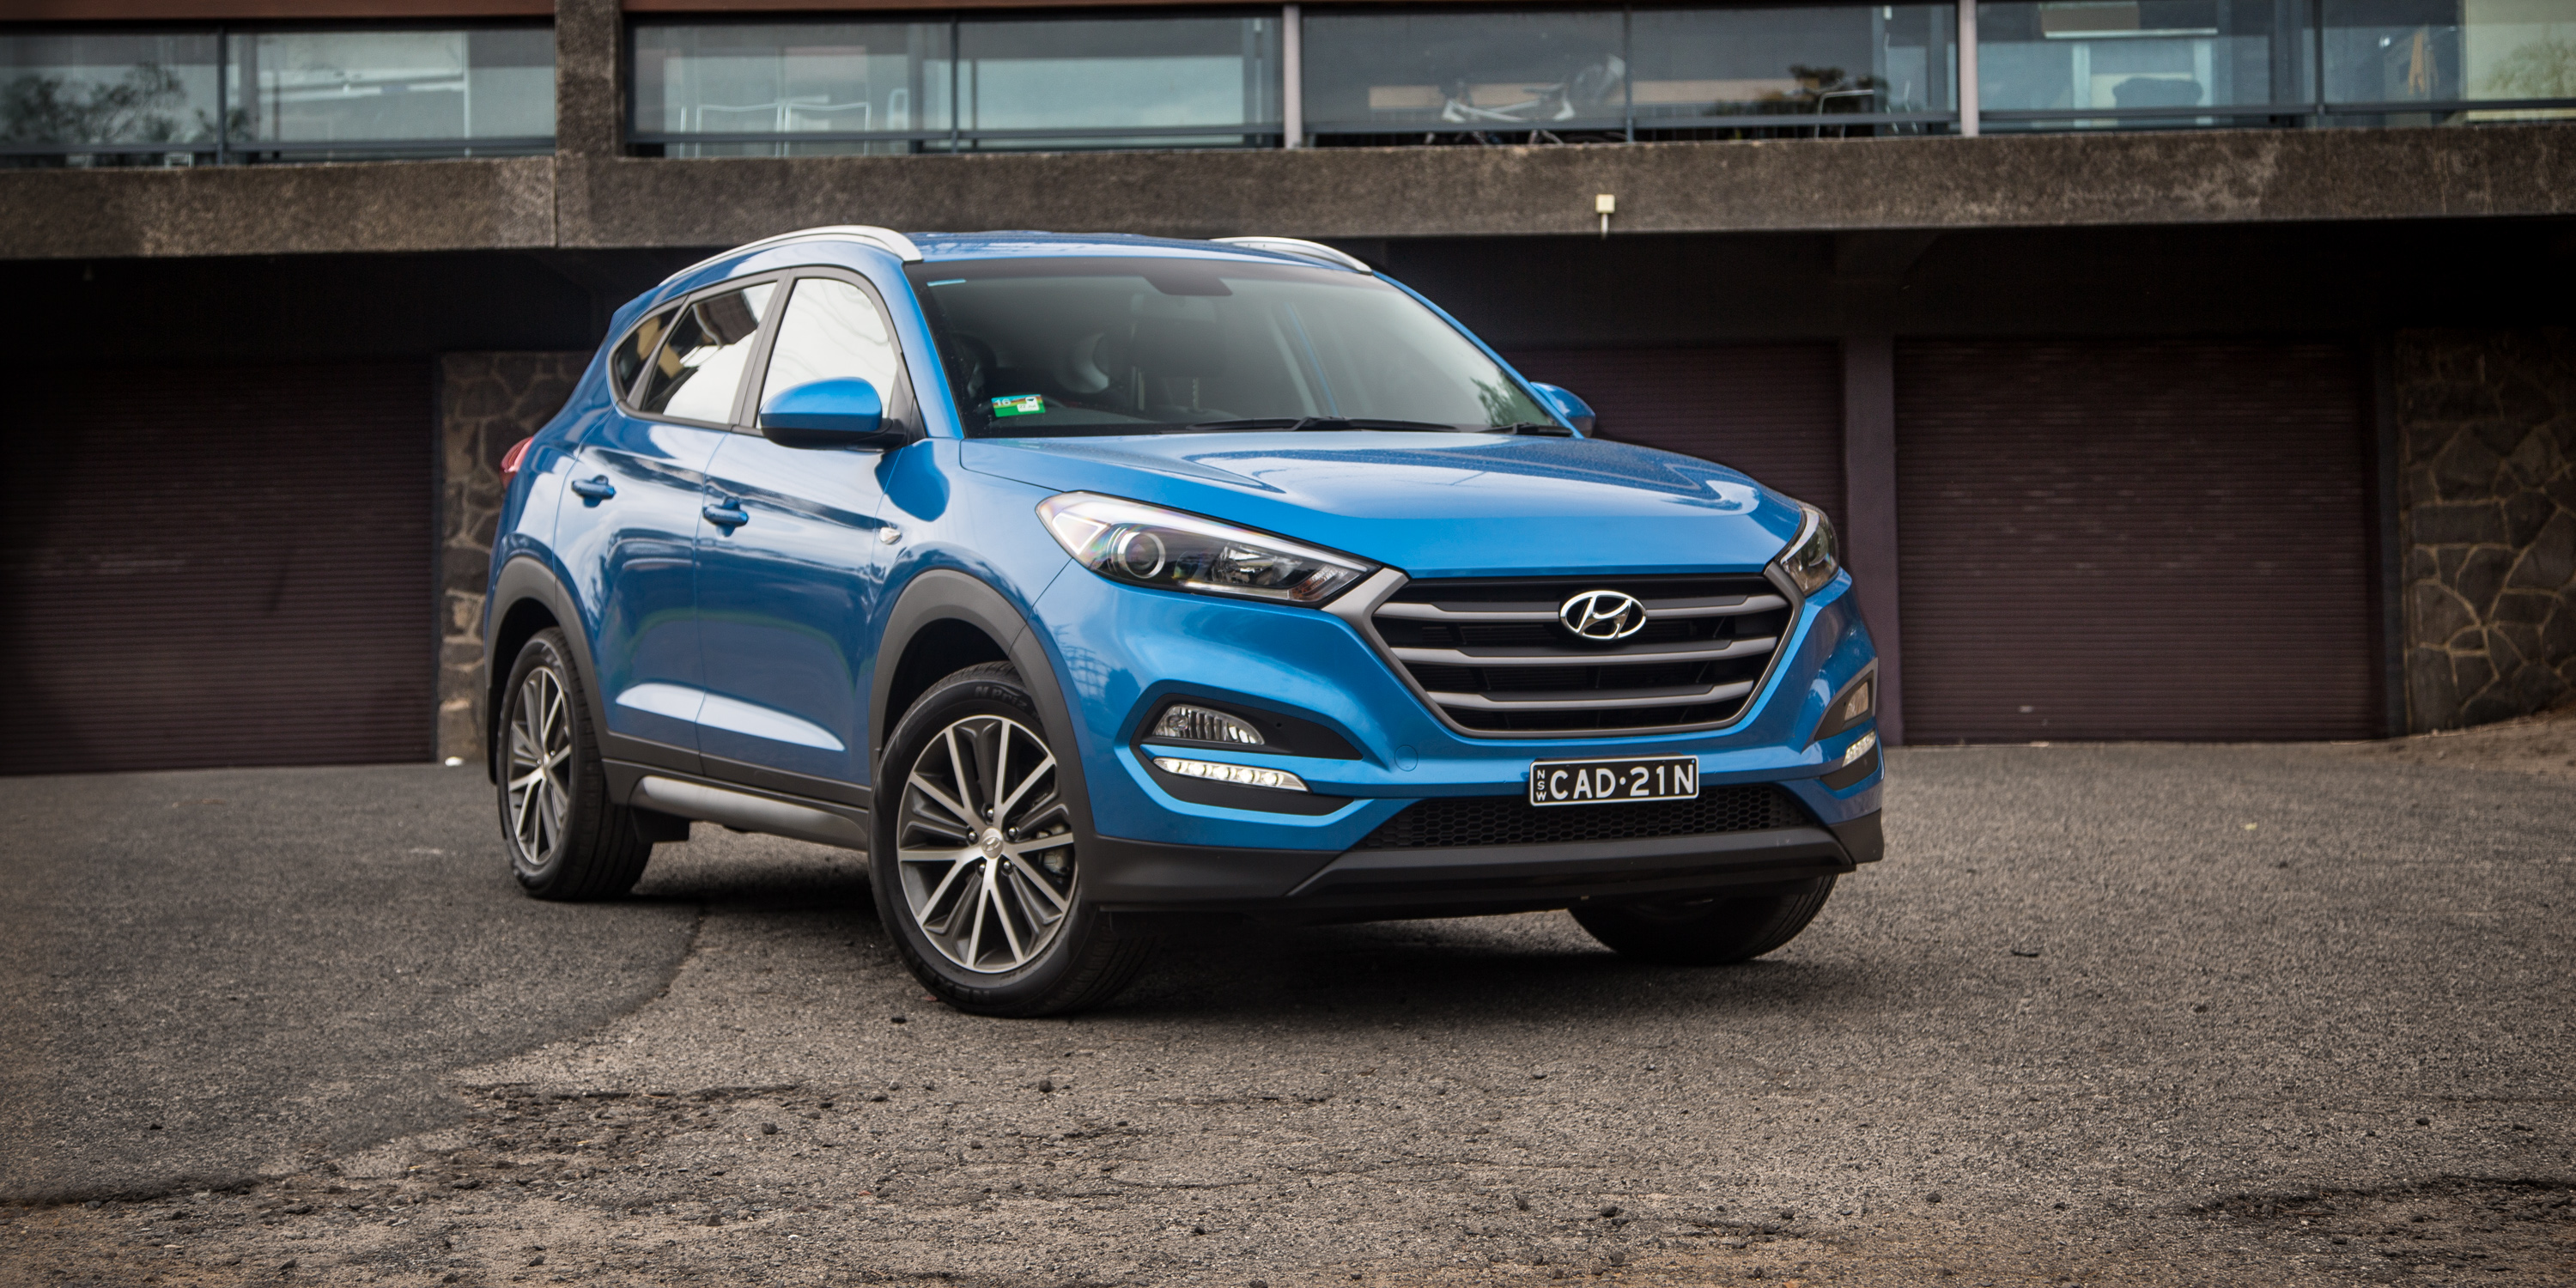 2016 Hyundai Tucson Active X Review: Long-term report two